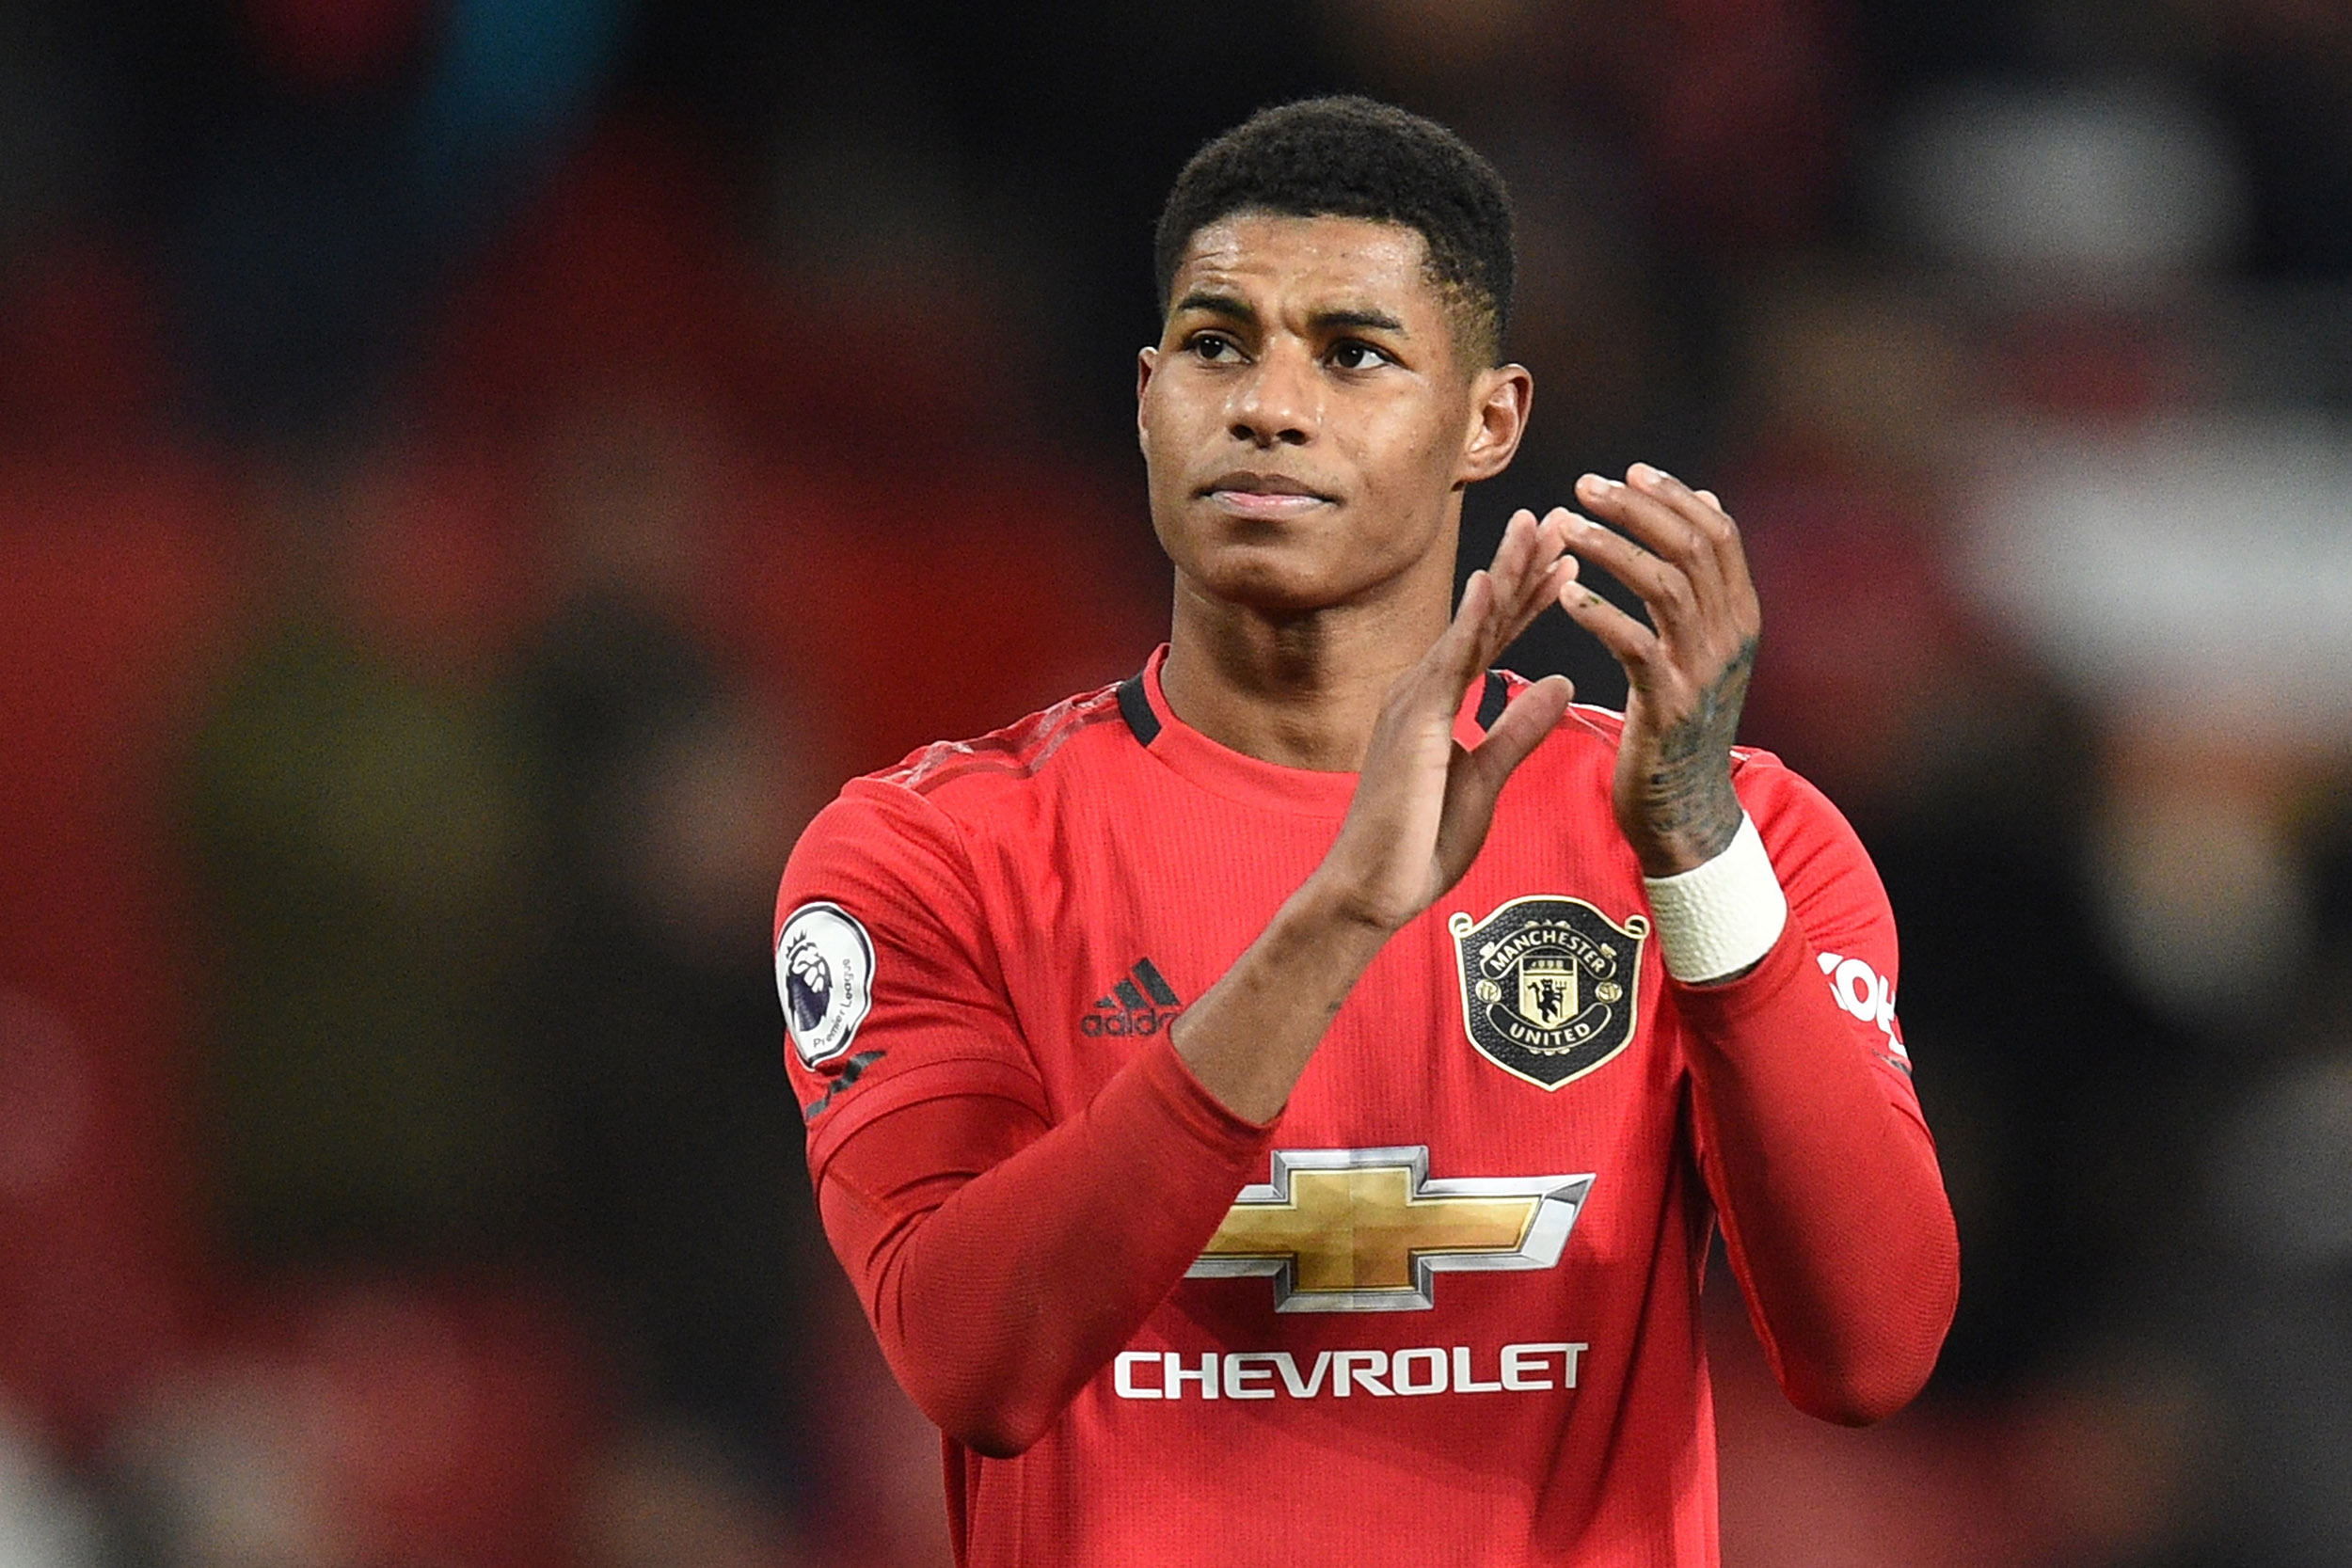 Manchester United Forward Marcus Rashford Had a Tough Childhood - Latest Sports News in Ghana & Sports News Around the World